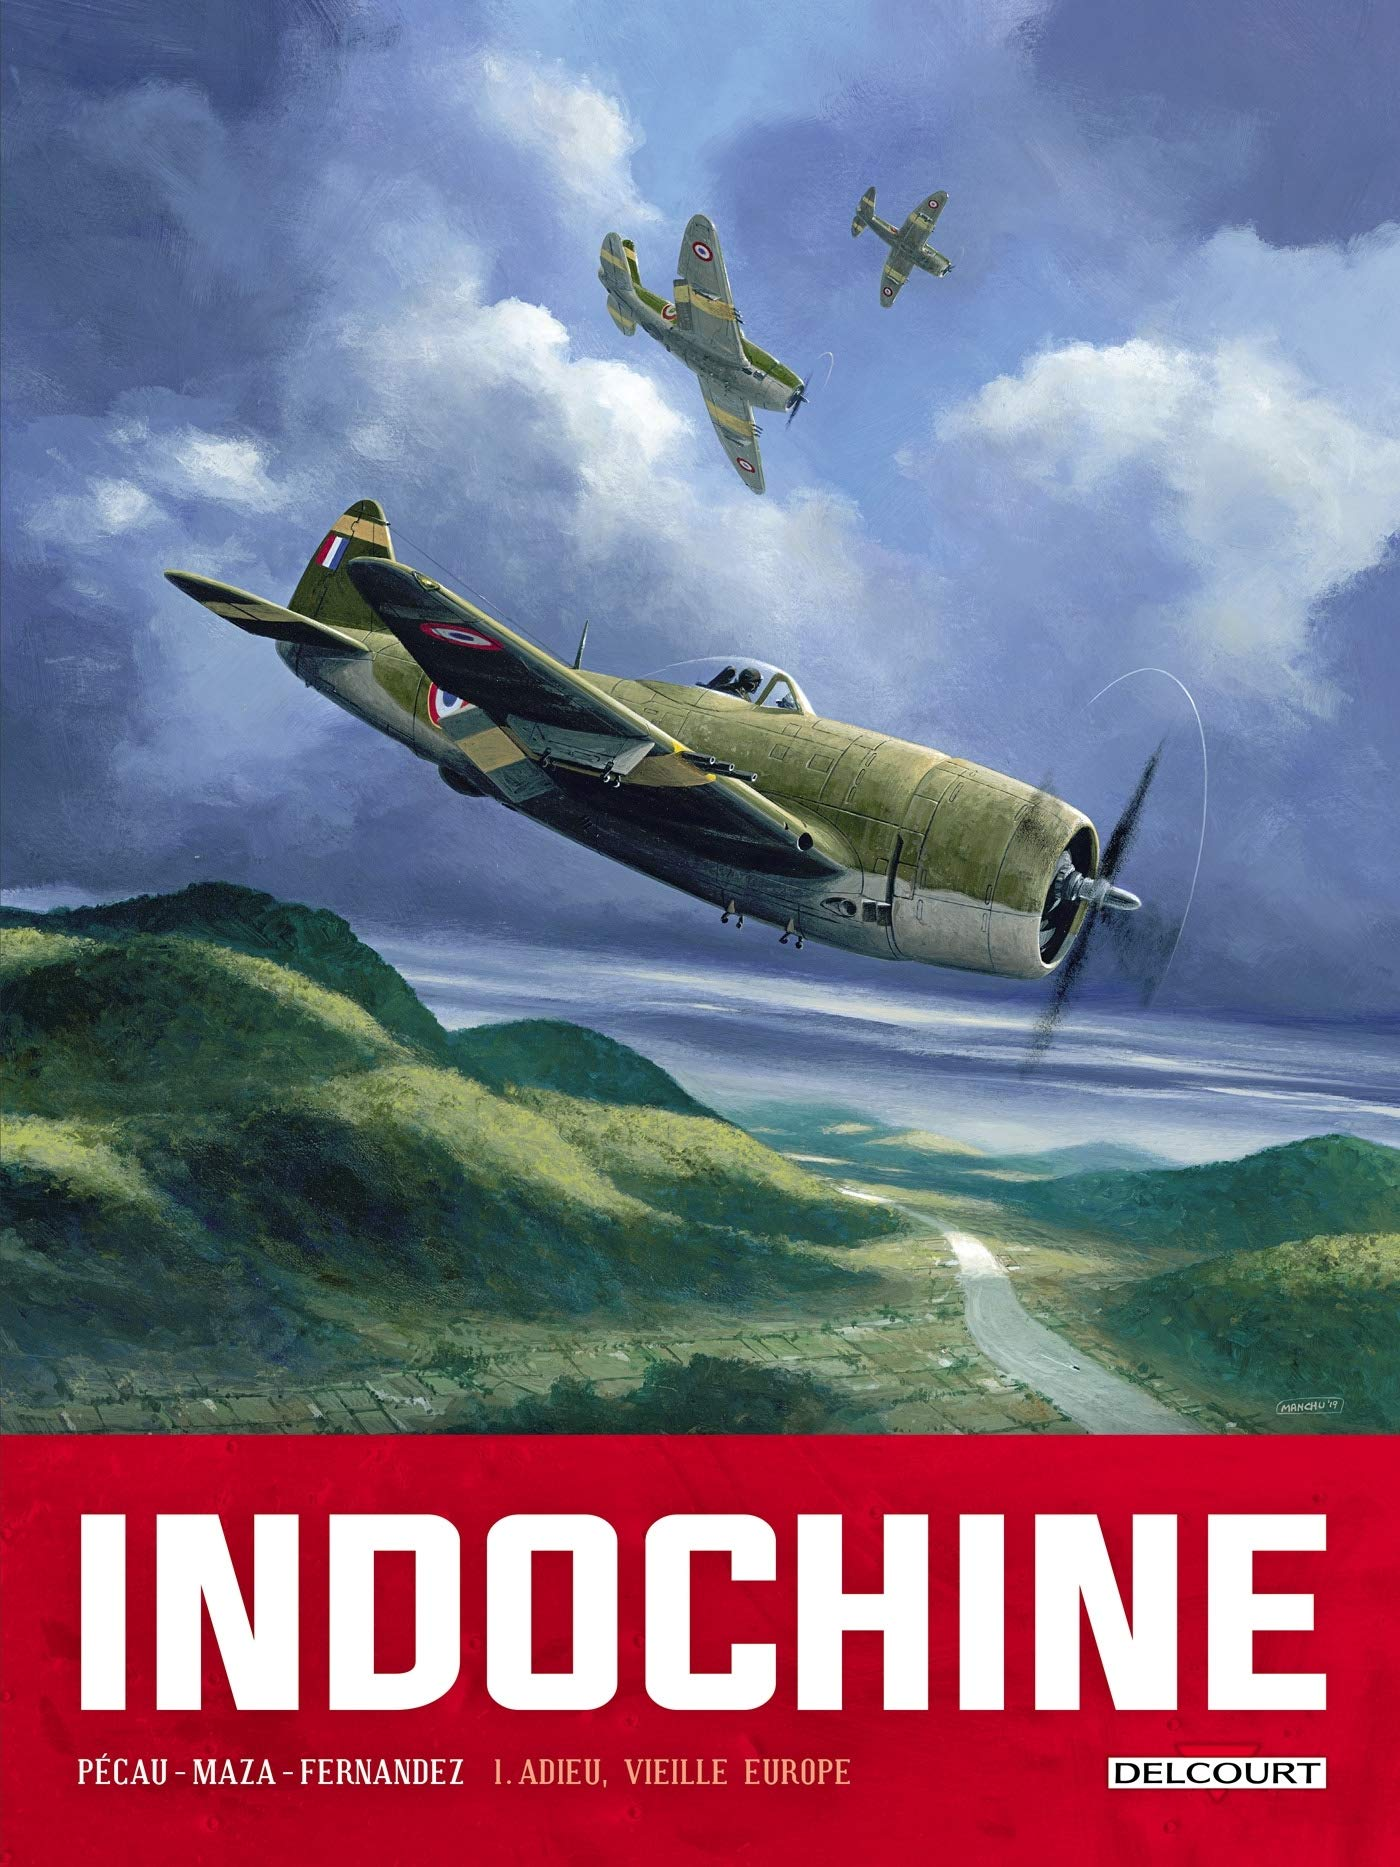 Indochine 1 - Adieu, vieille Europe